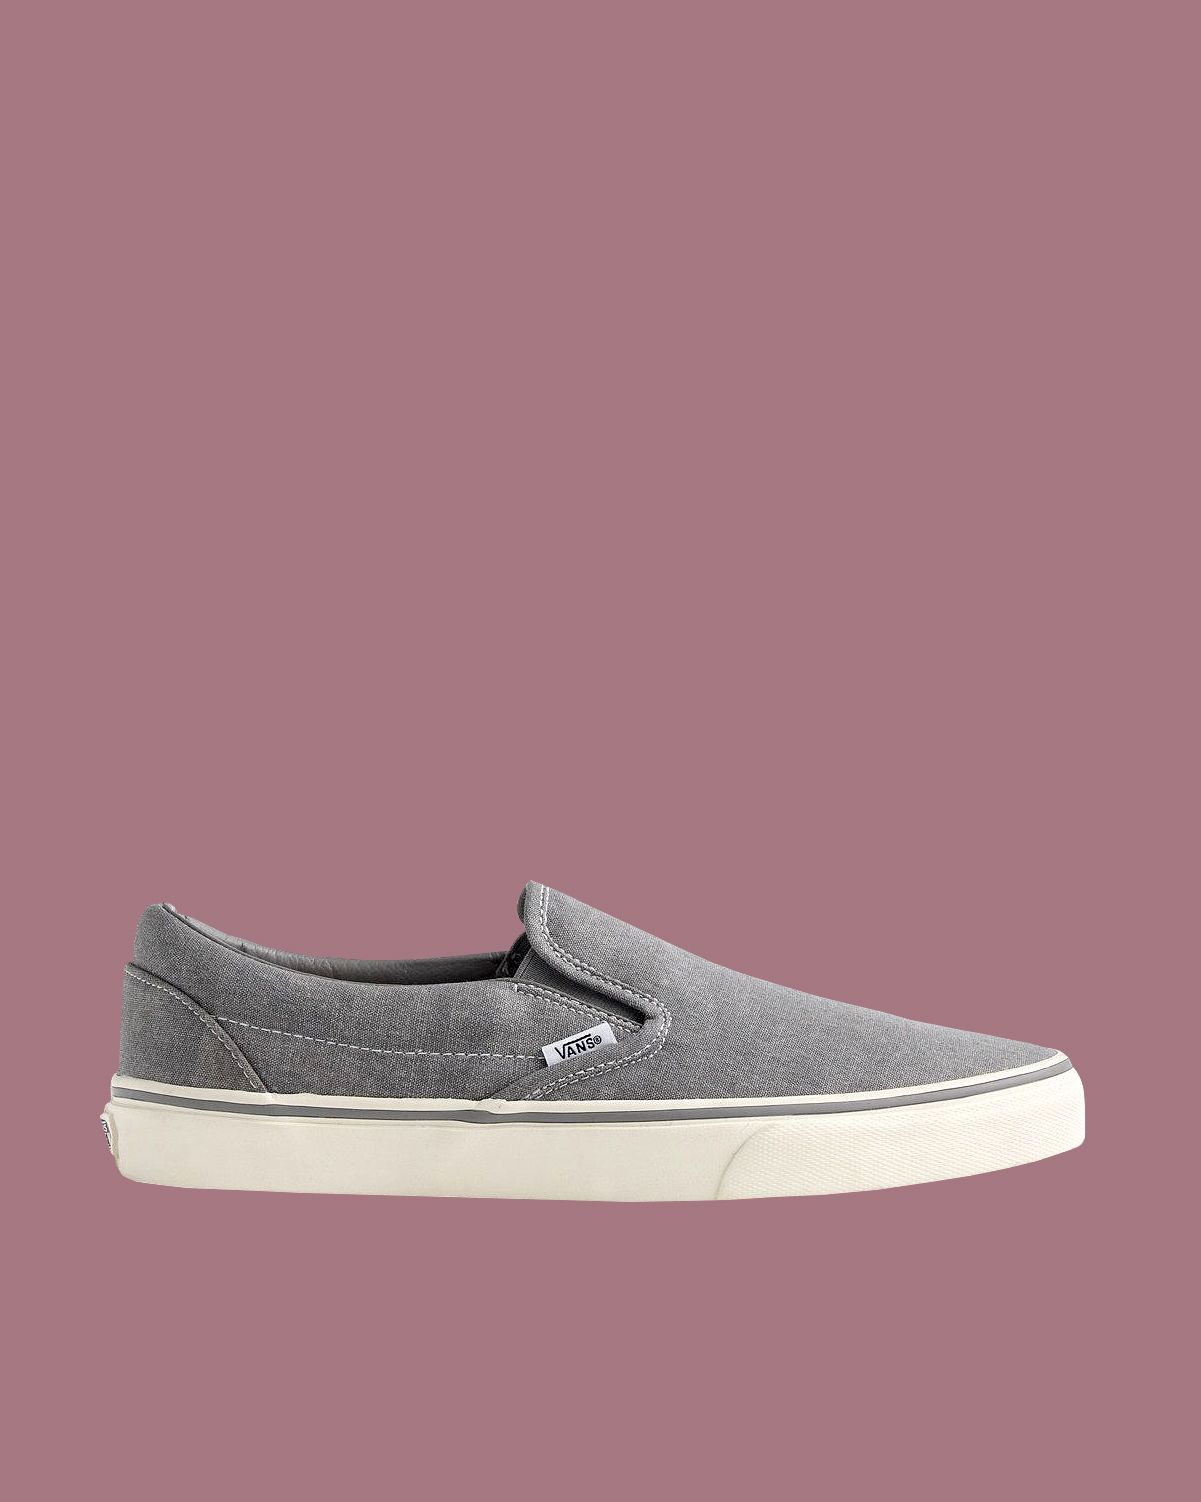 Vans for J. Crew Washed Canvas Classic Slip-On Sneakers